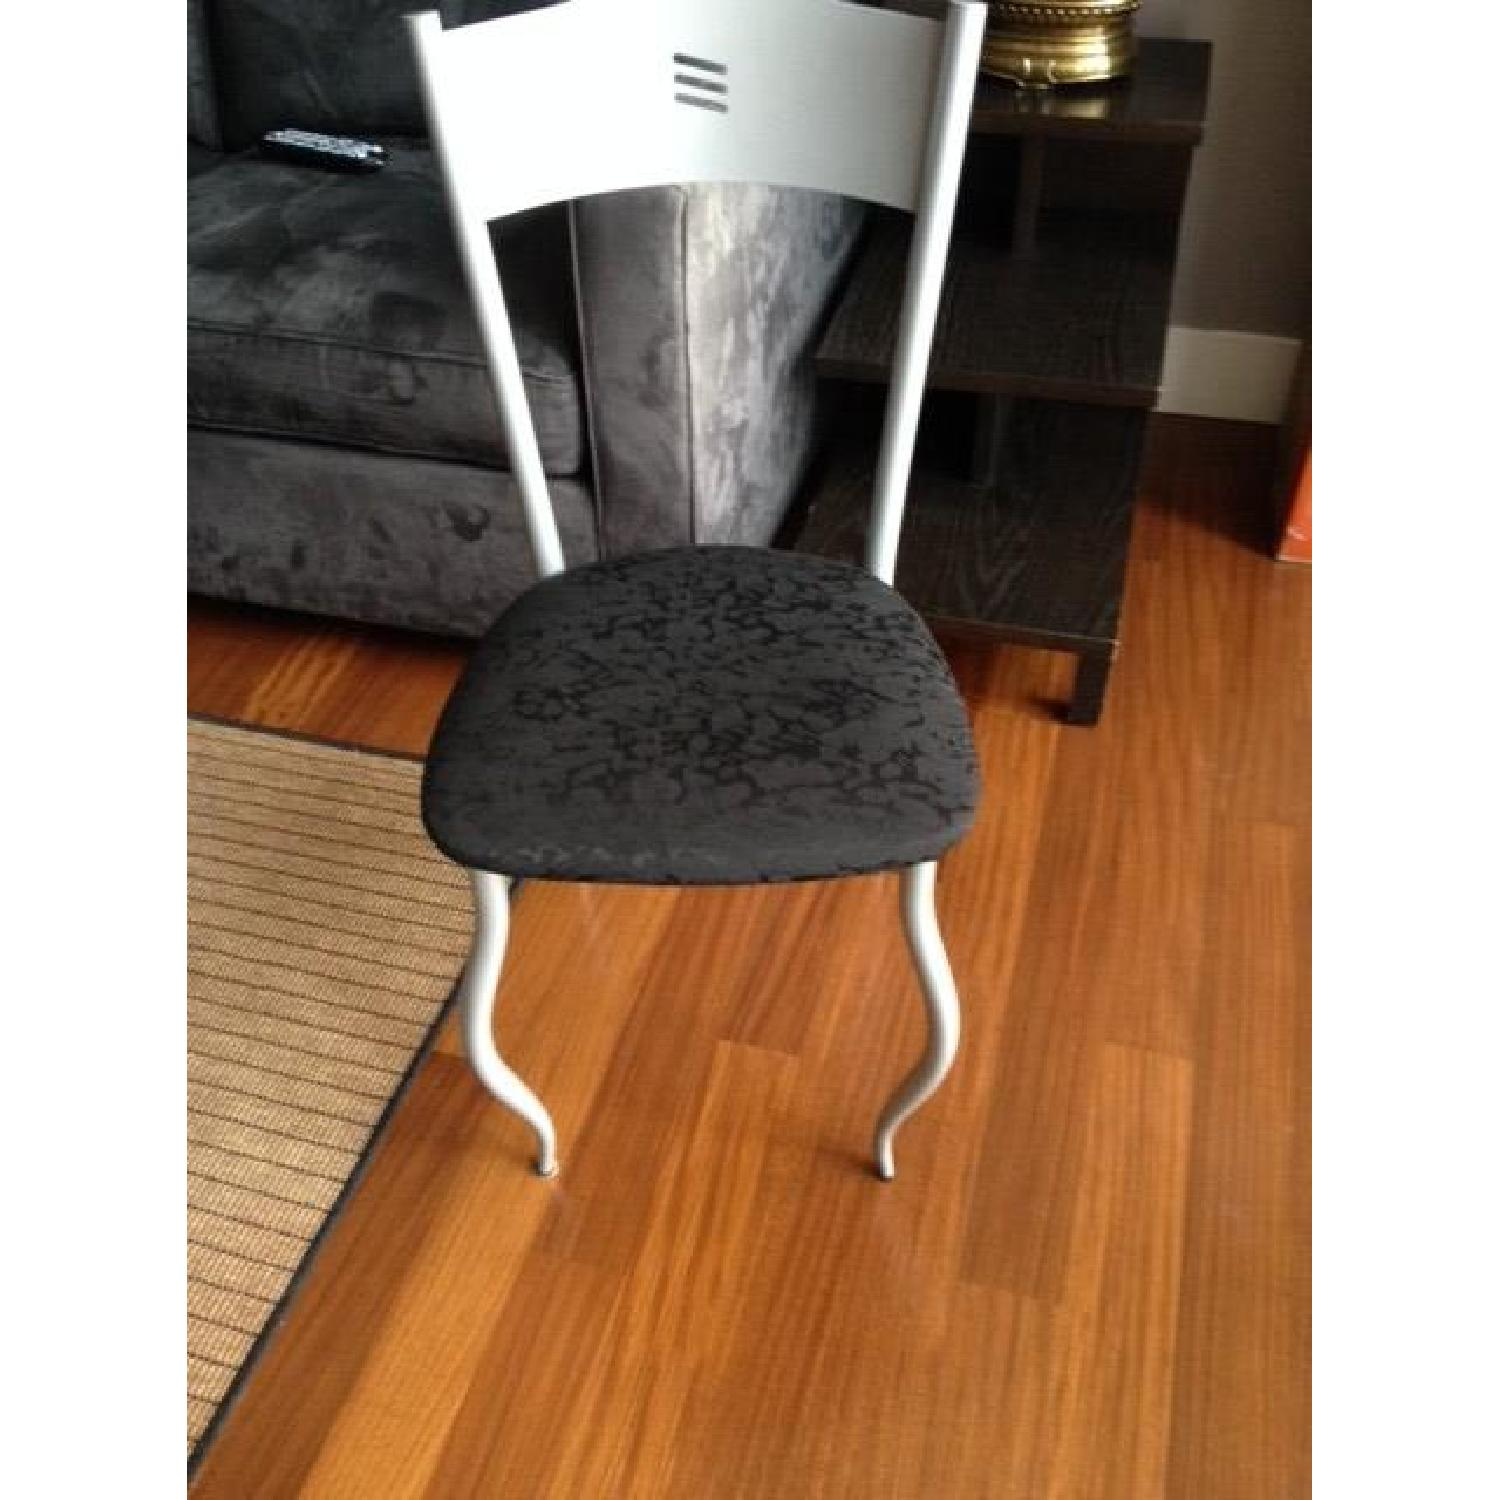 Glass Table w/ 4 Chairs - image-6